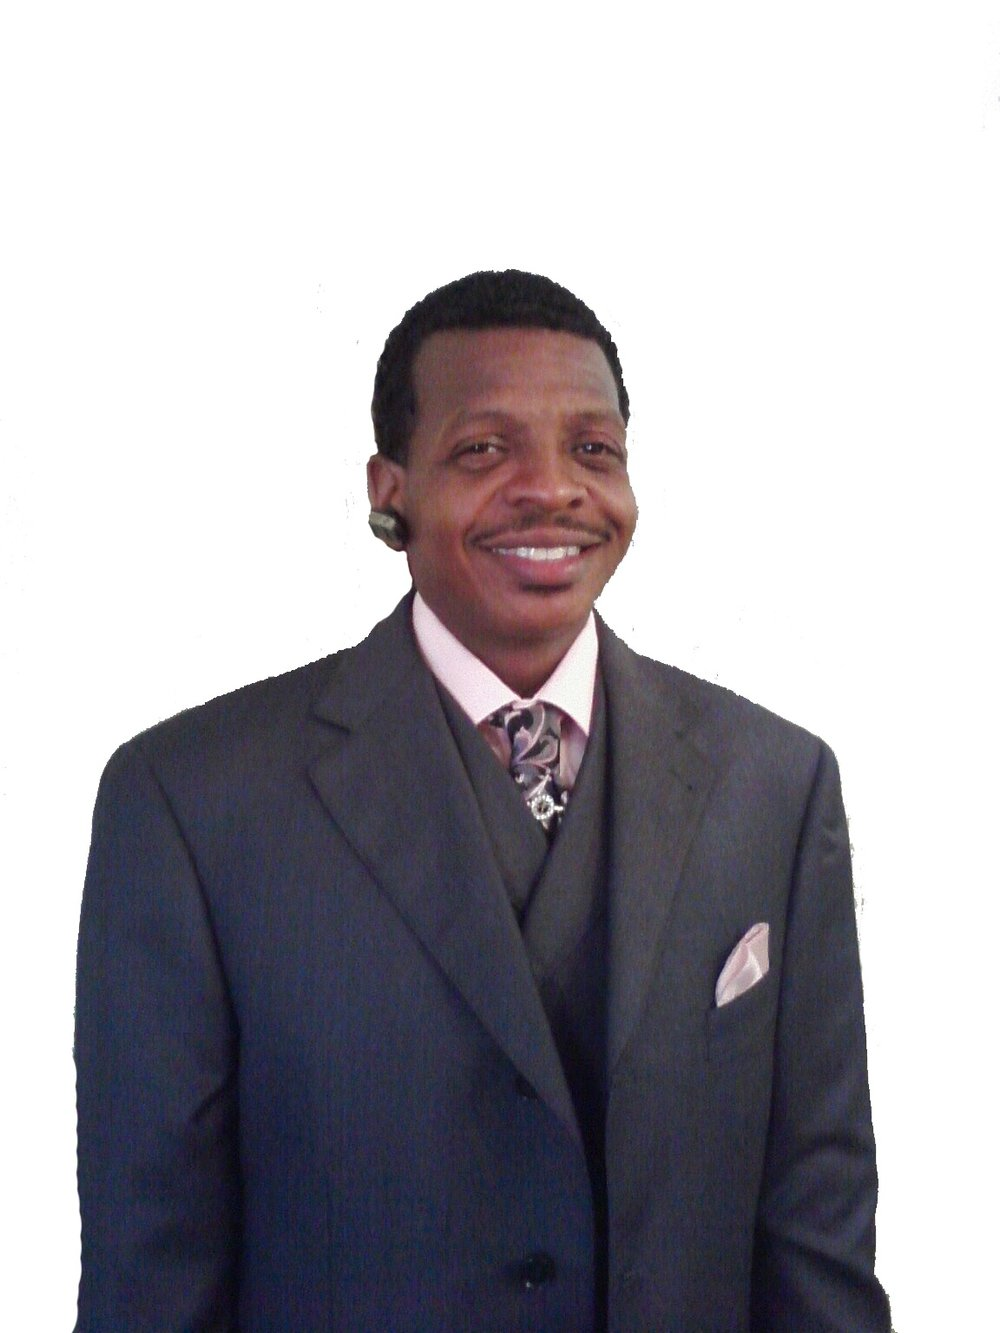 MIN. MICHAEL HILL - FOCUS: MEN IN MINISTRY7 PM SERVICE FOLLOWED BY SESSION | MIDNIGHT PRAYER